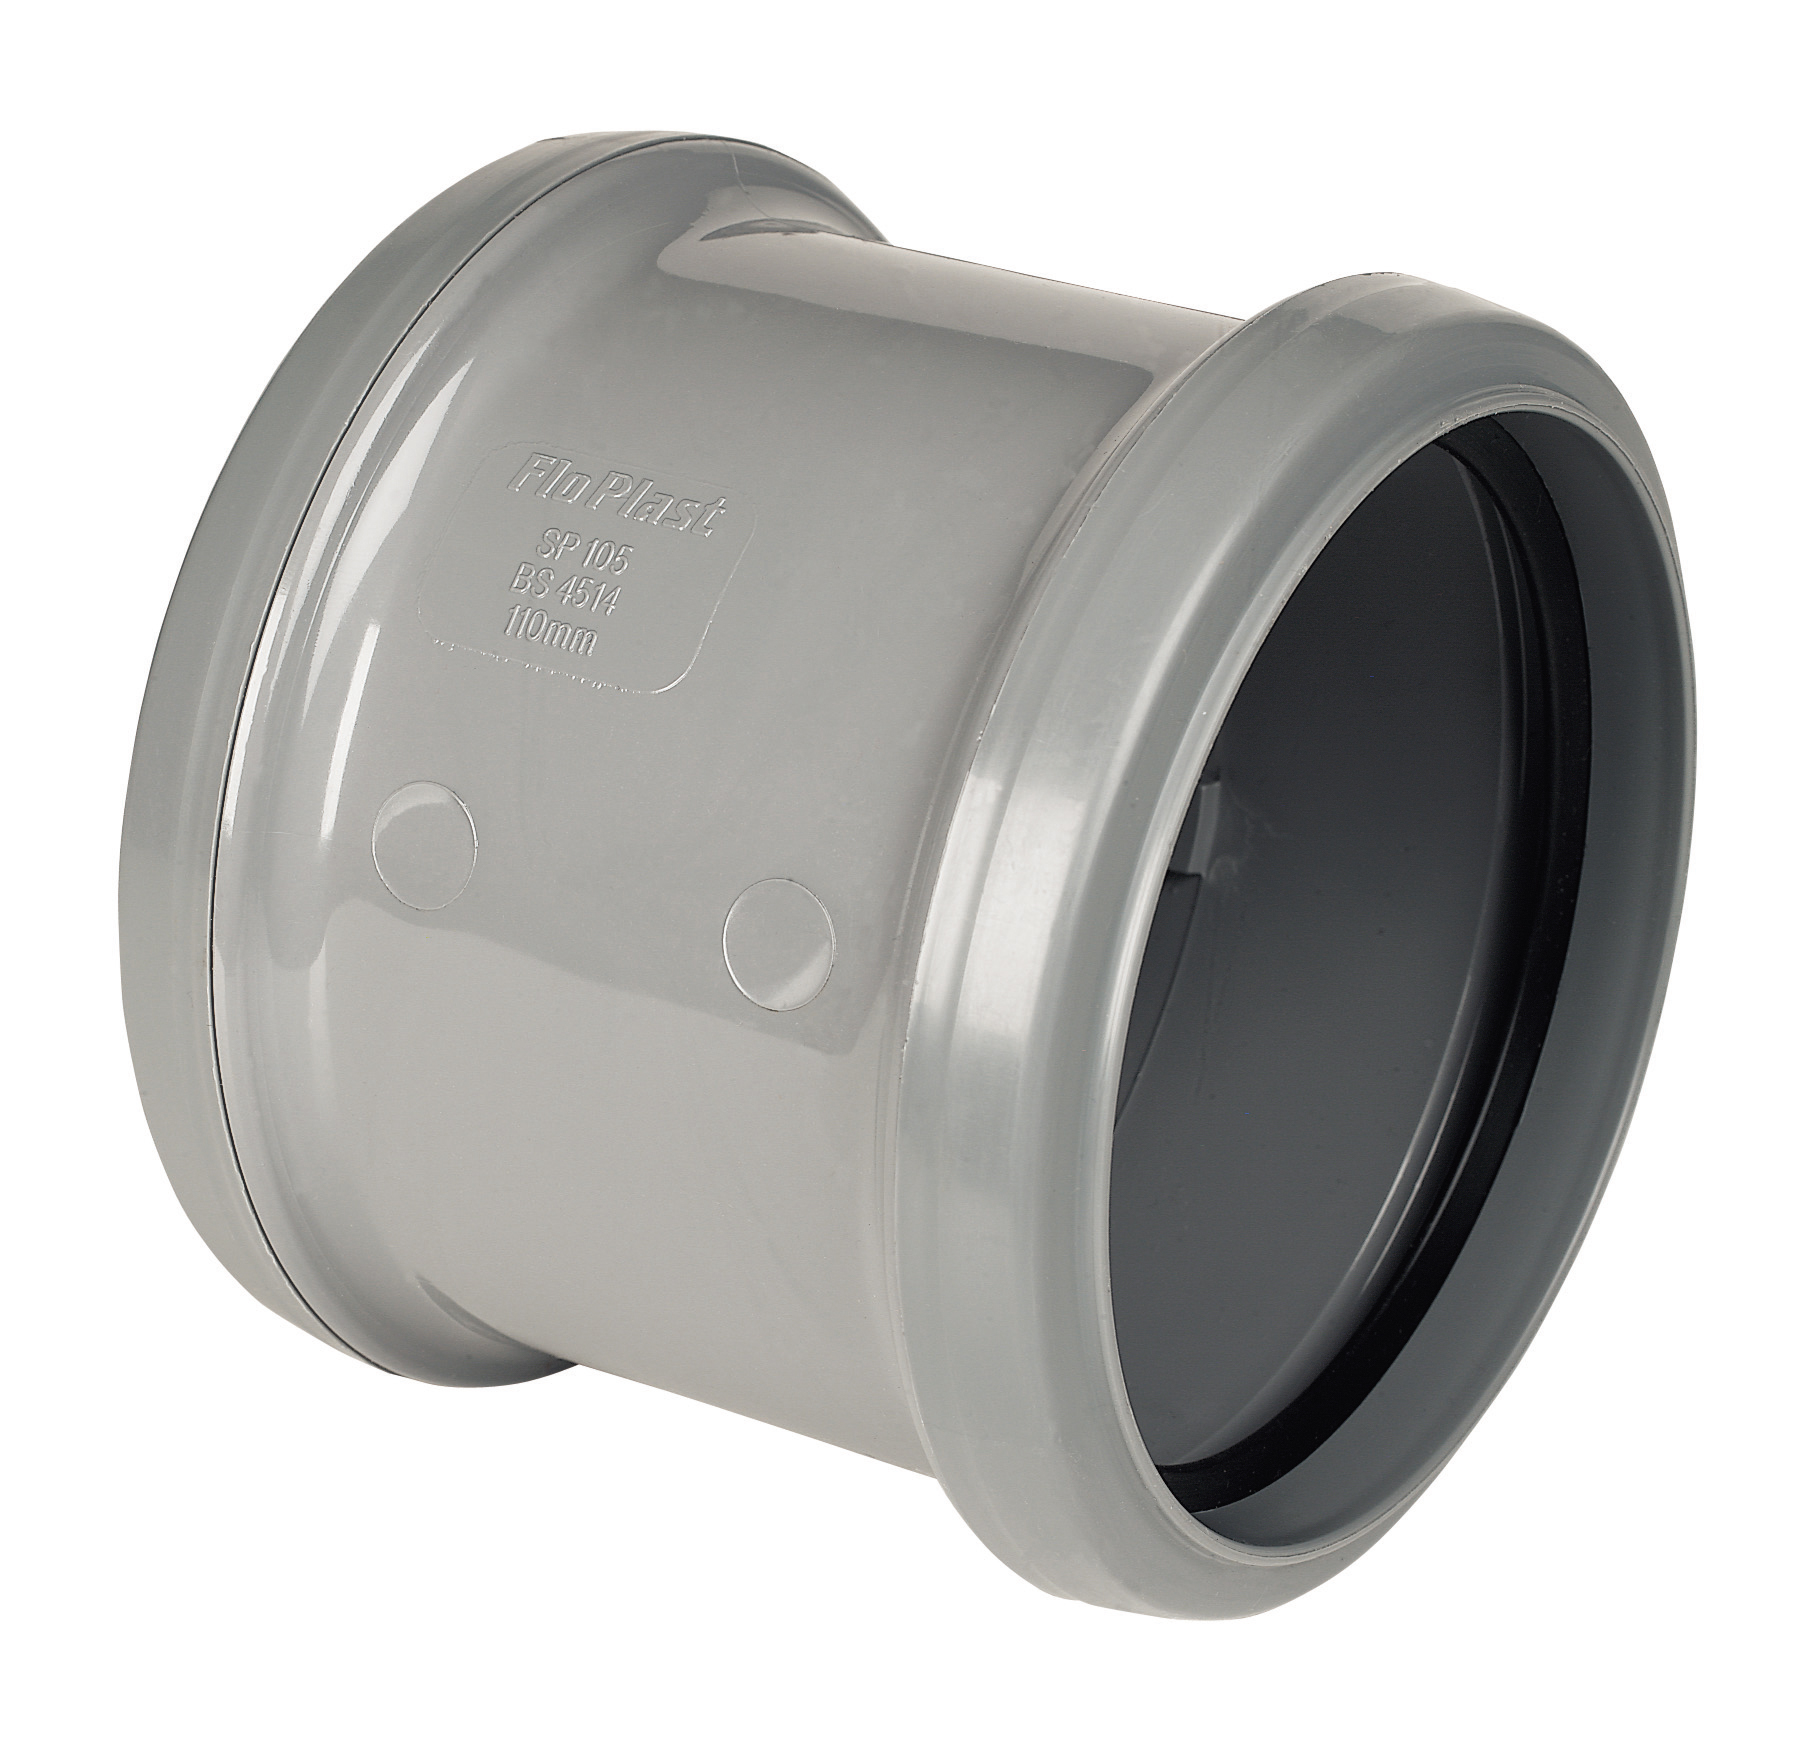 FloPlast 110mm Soil Pipe Double Socket Coupling